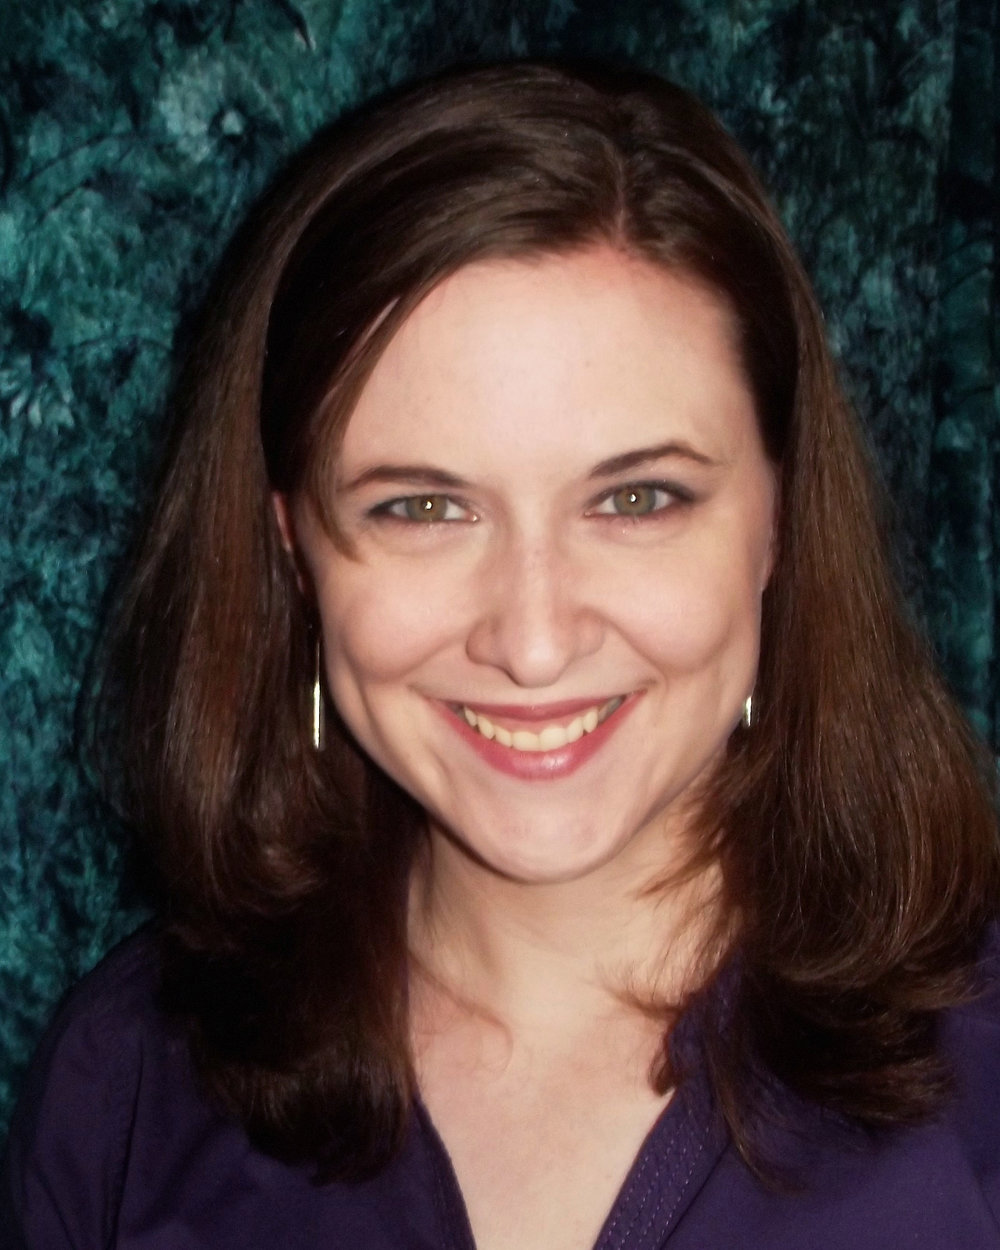 Angie Settlemire - Angie is director and founder of Outta Theatre. See full bio at top of page.